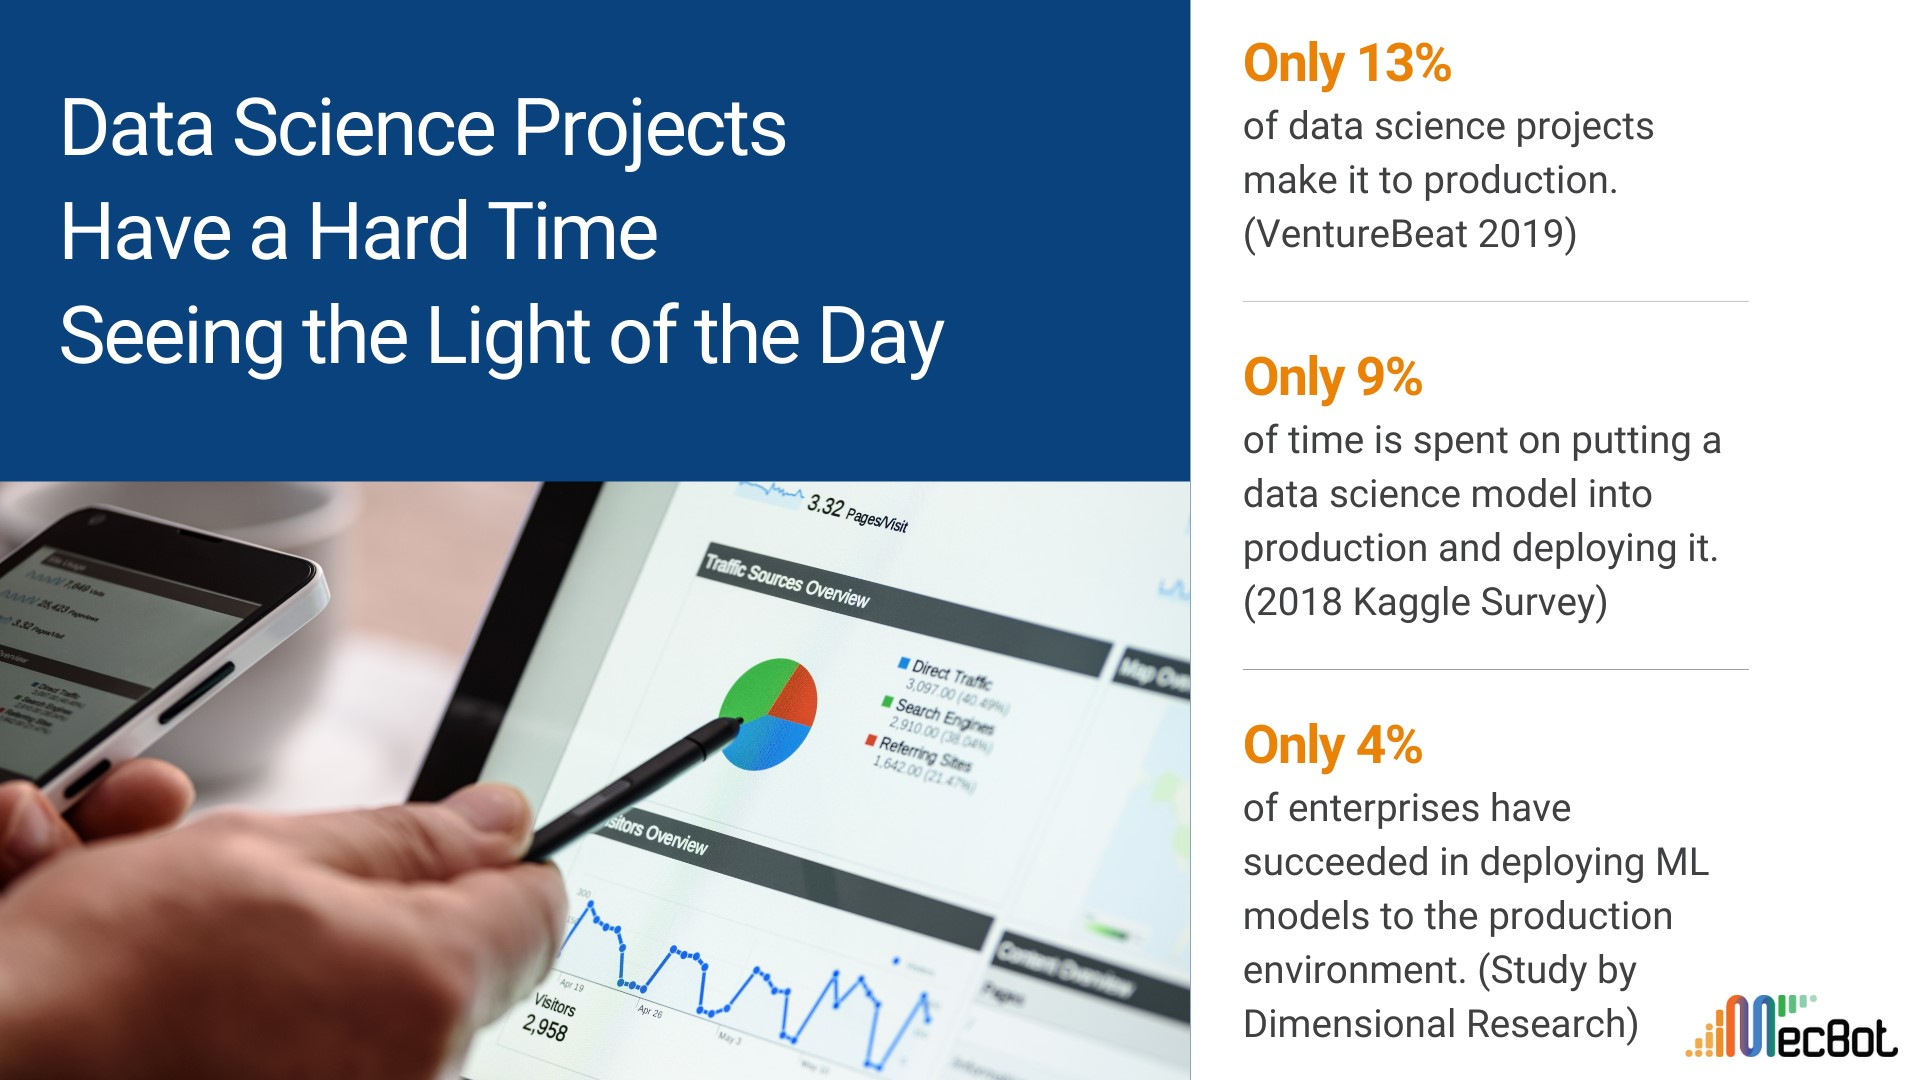 Data Science Projects Have Hard Time Seeing the Light